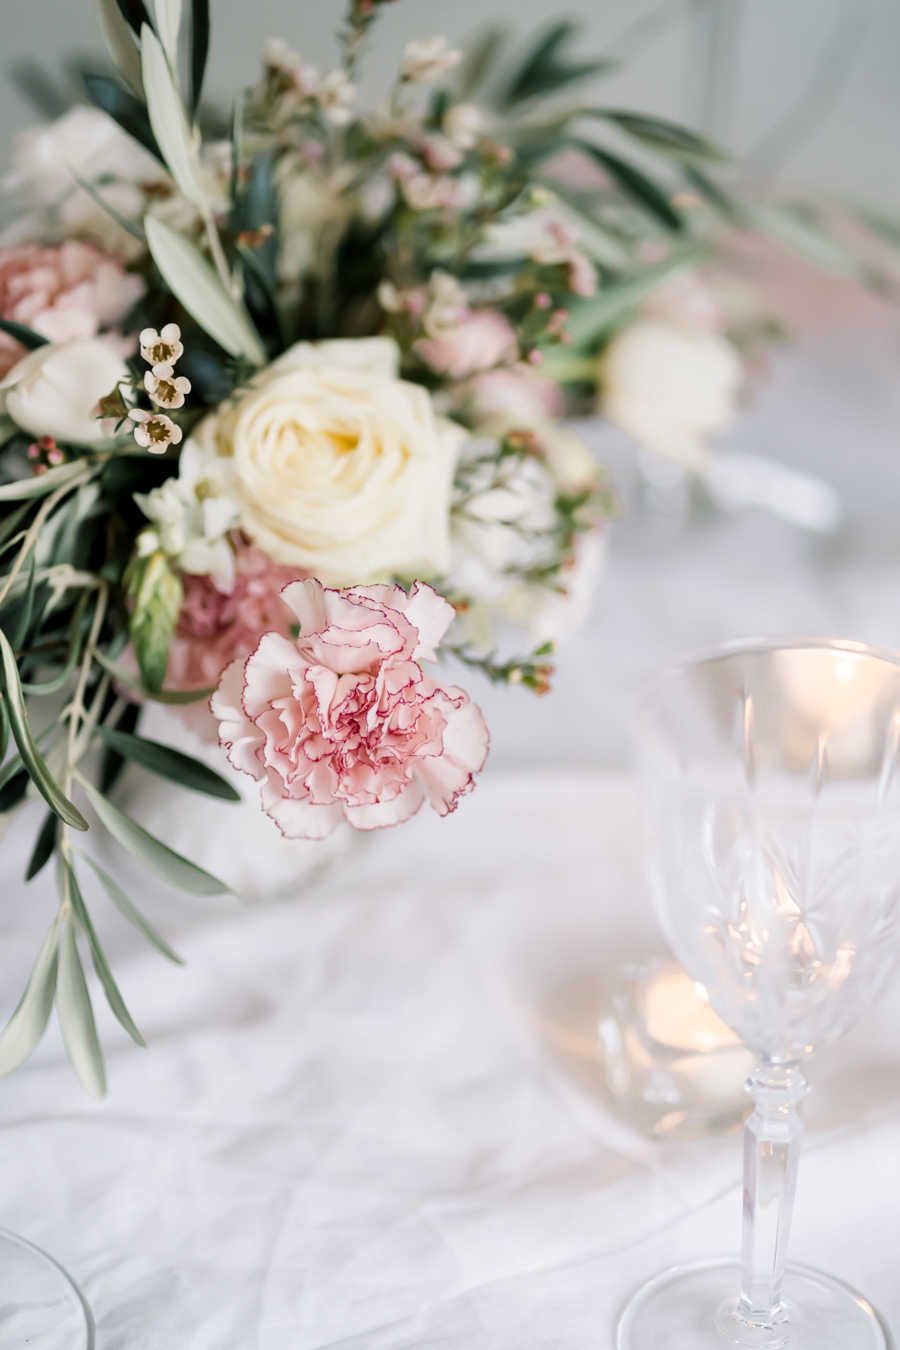 Spring blossom wedding style inspiration and ideas with Chloe Ely Photography at Barton Court (41)